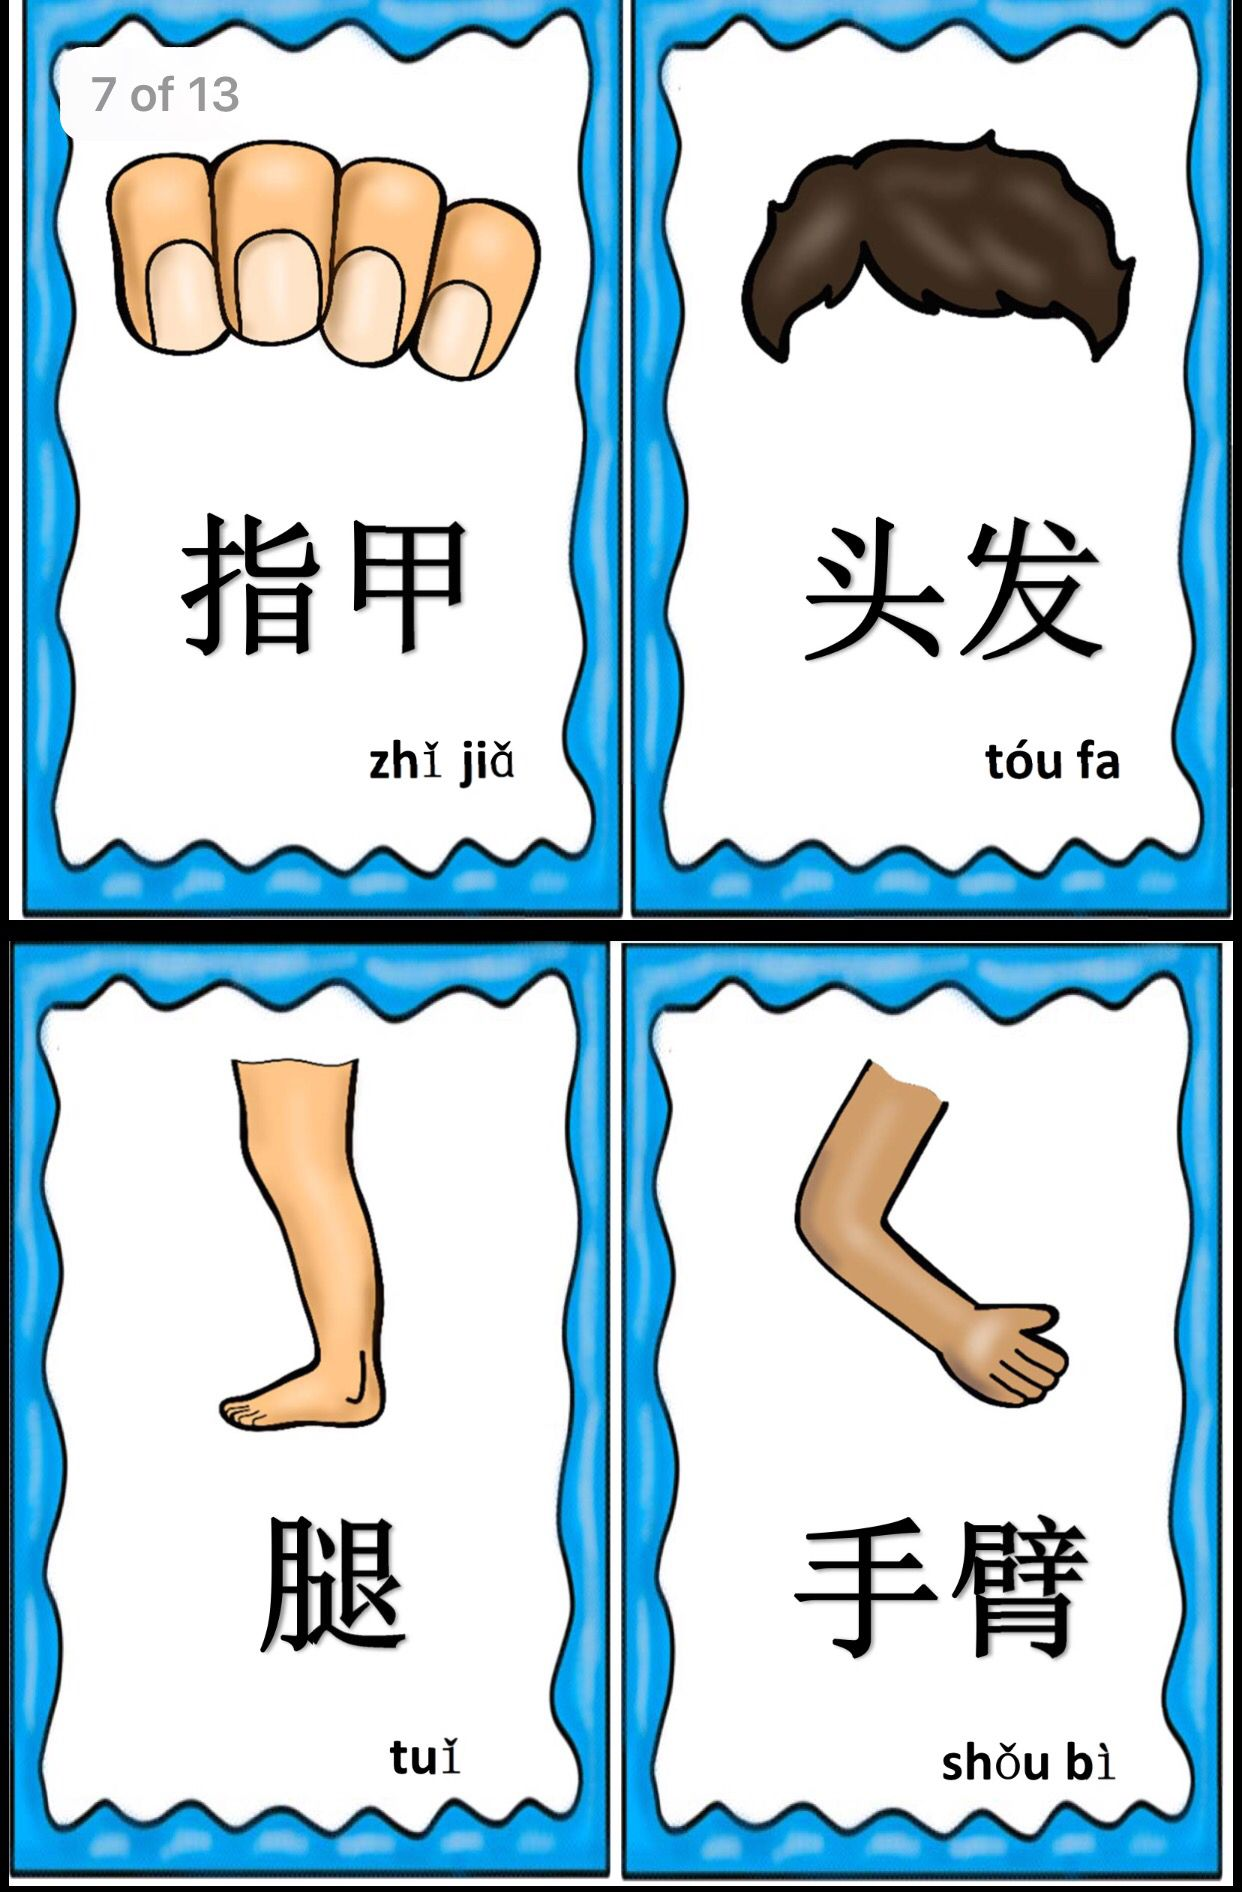 Pin by Xiaobo Lu on Mandarin Body parts flashcards/ game cards ...